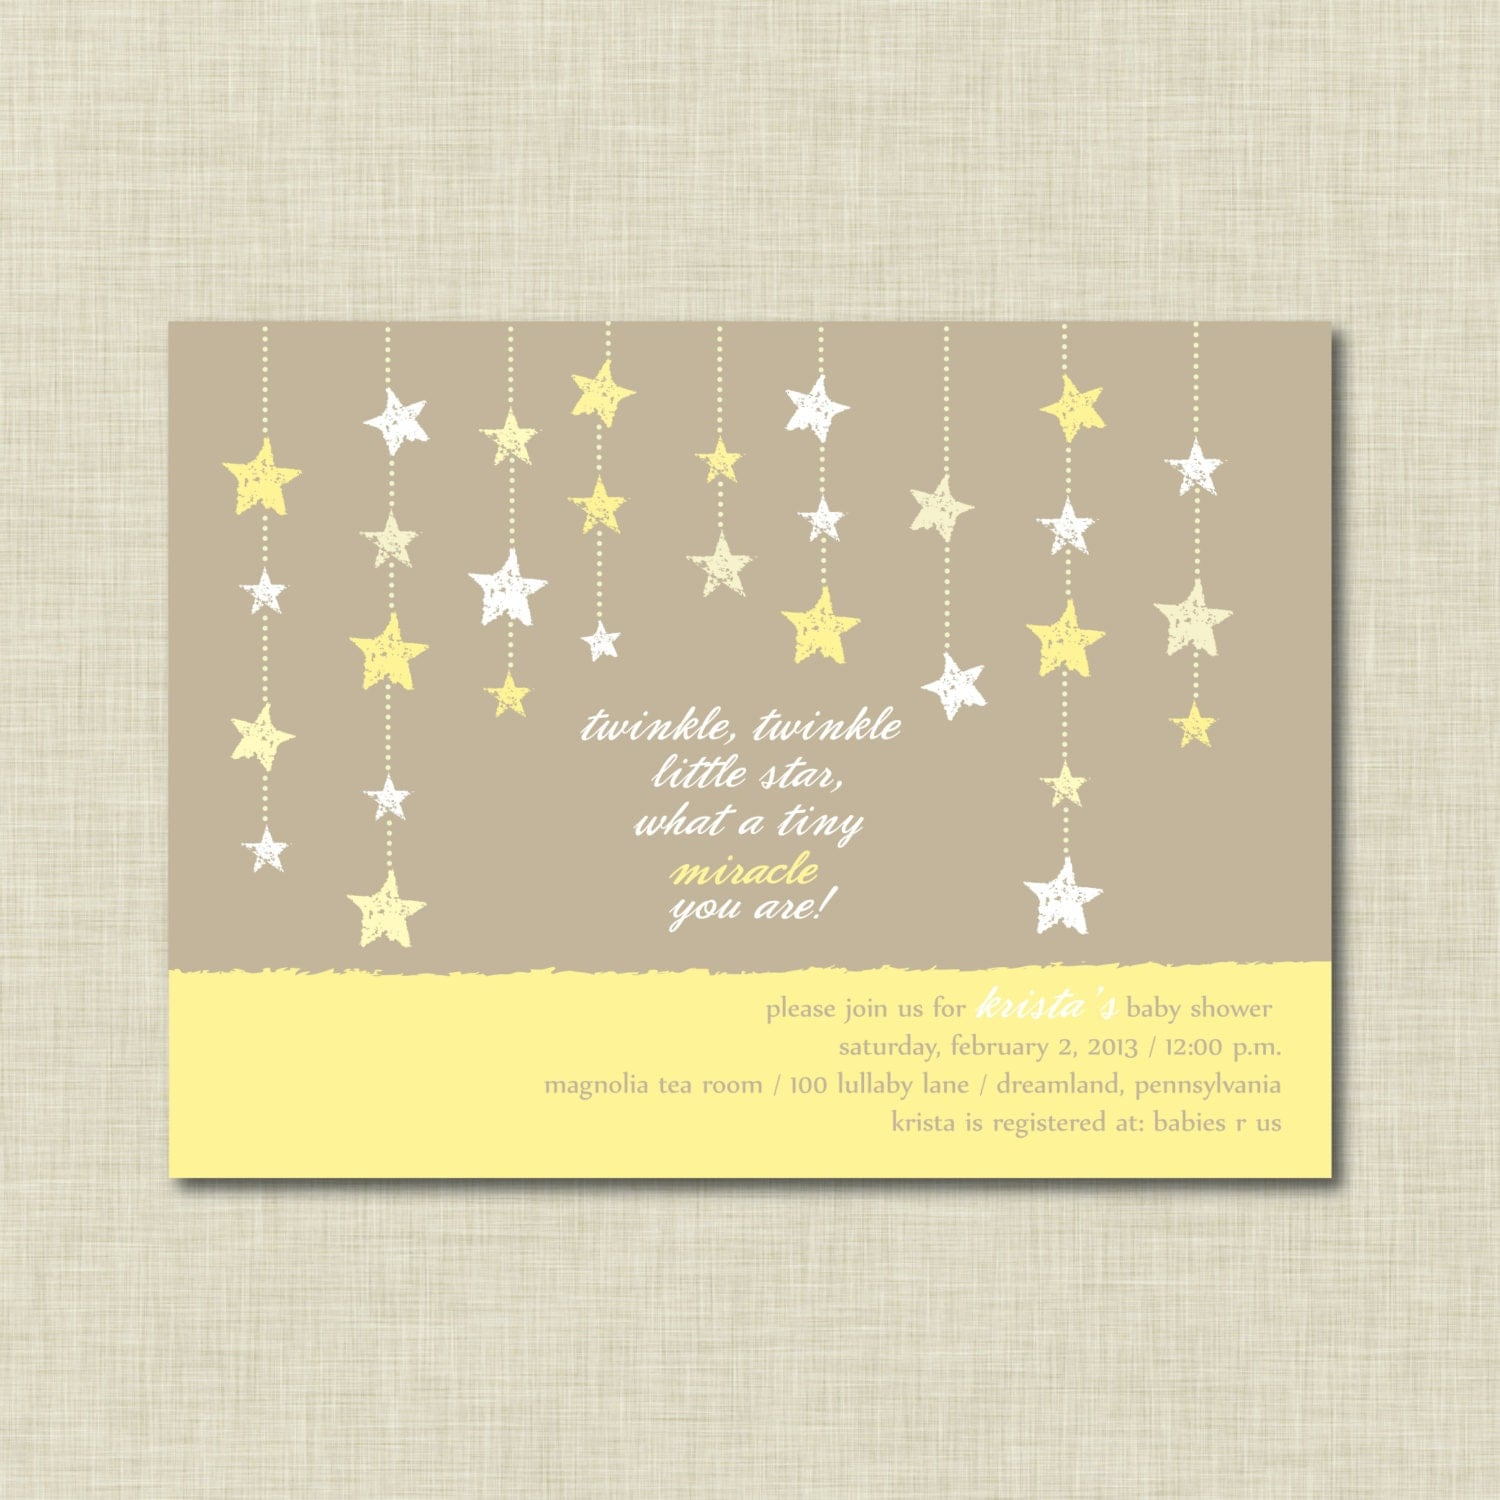 twinkle twinkle little star baby shower invitation by ambermangle